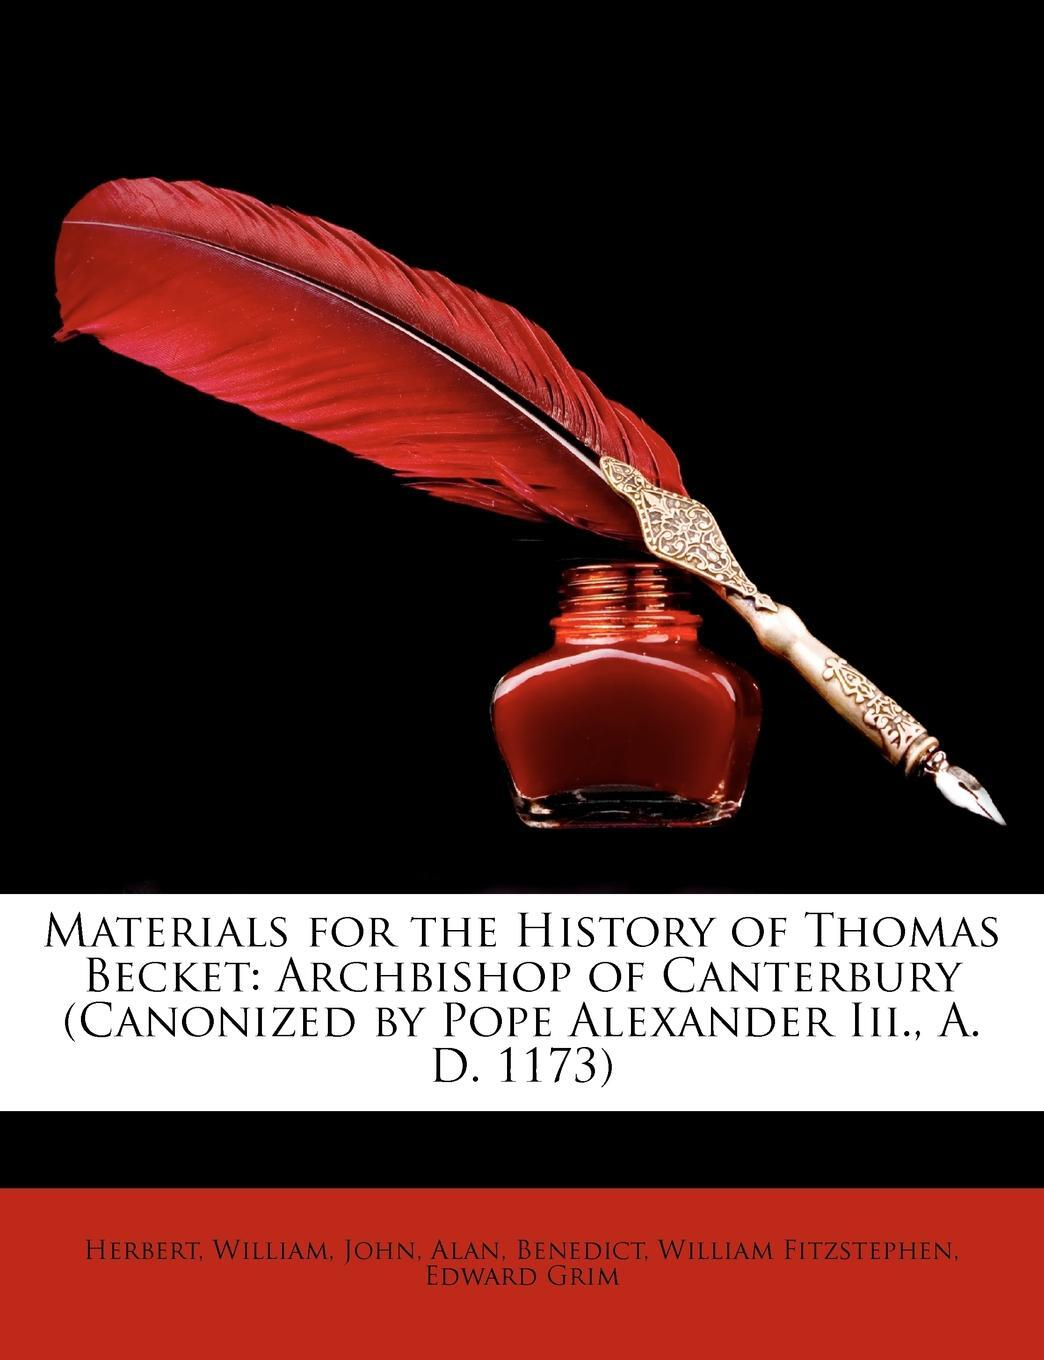 Materials for the History of Thomas Becket. Archbishop of Canterbury (Canonized by Pope Alexander Iii., A. D. 1173)